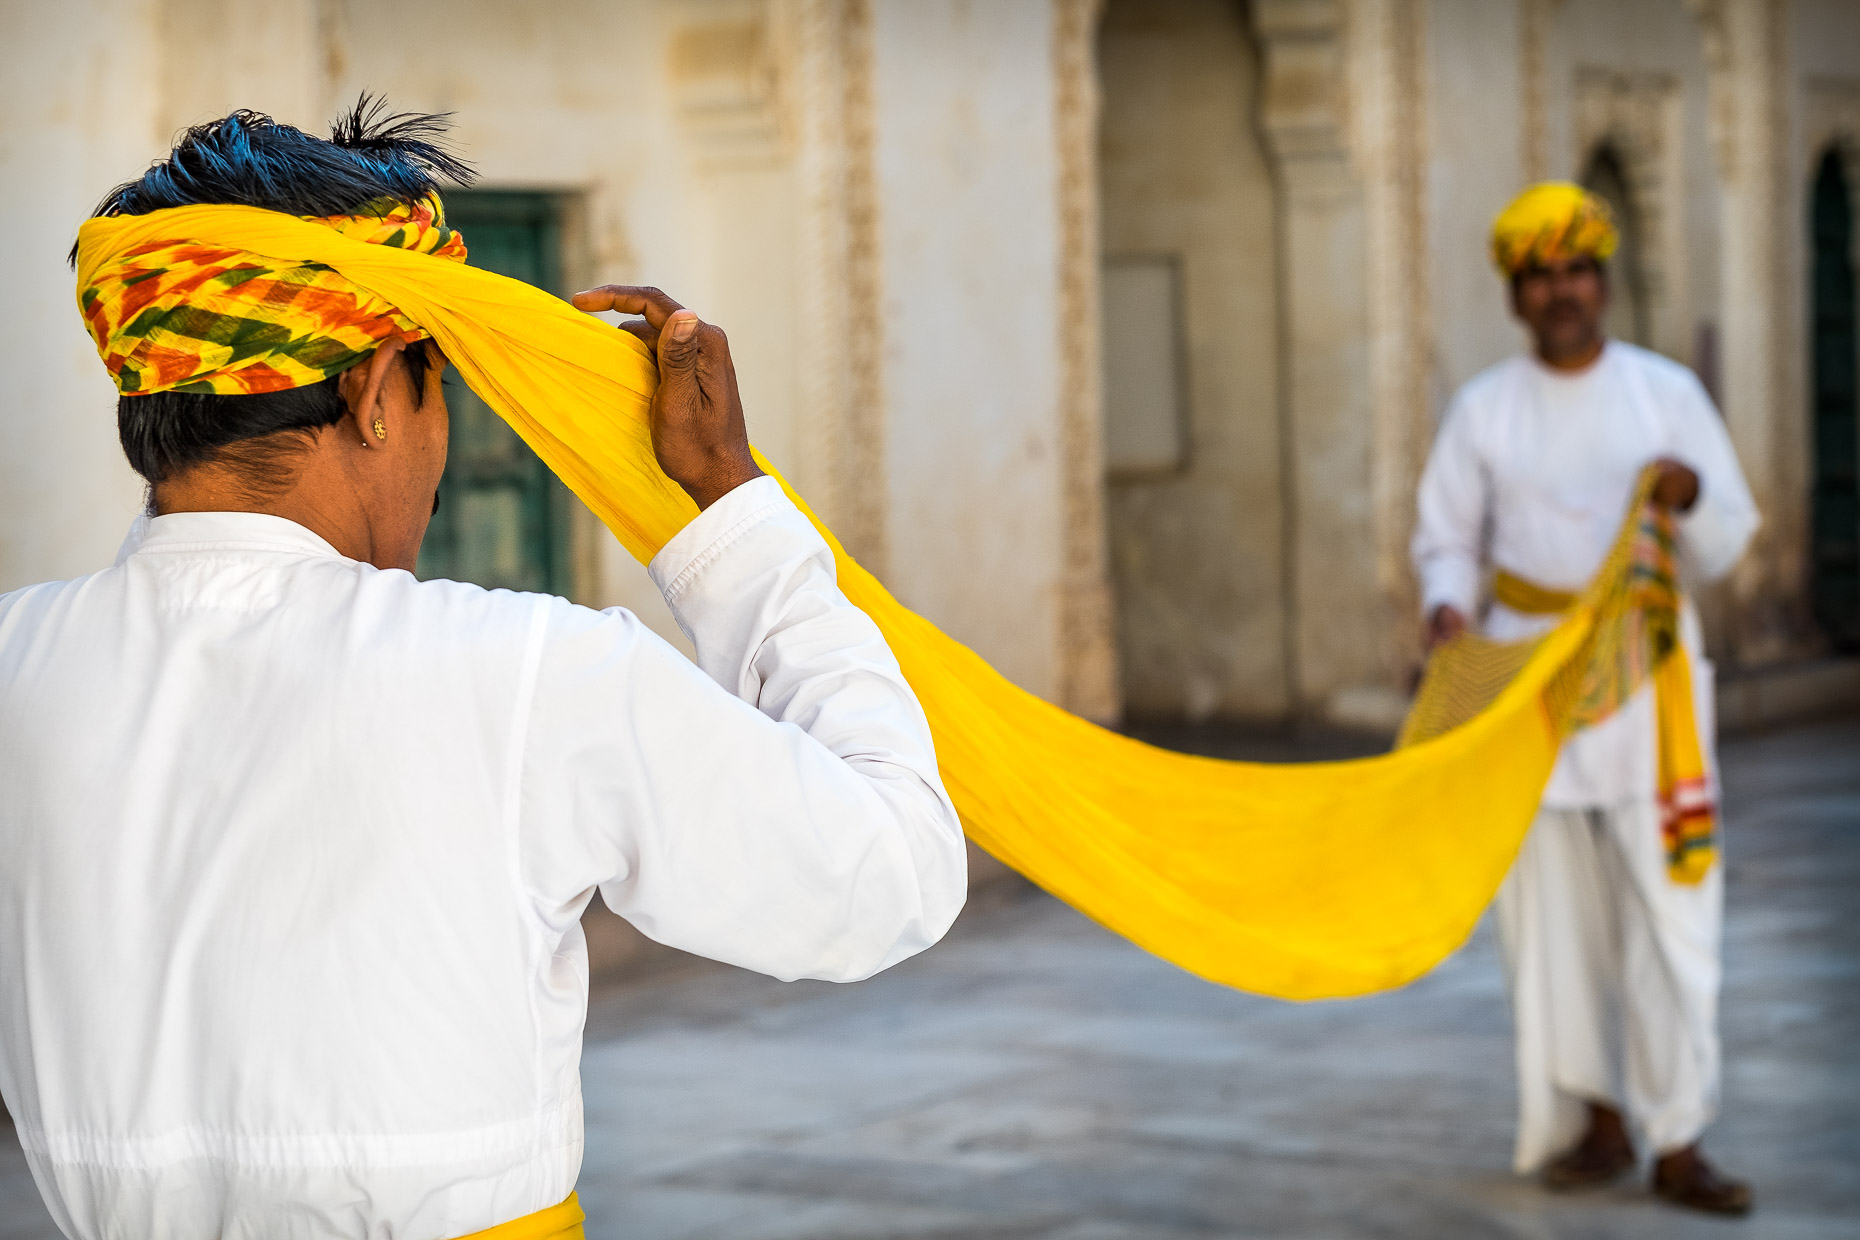 T Fixing his turban, Rajasthan, India